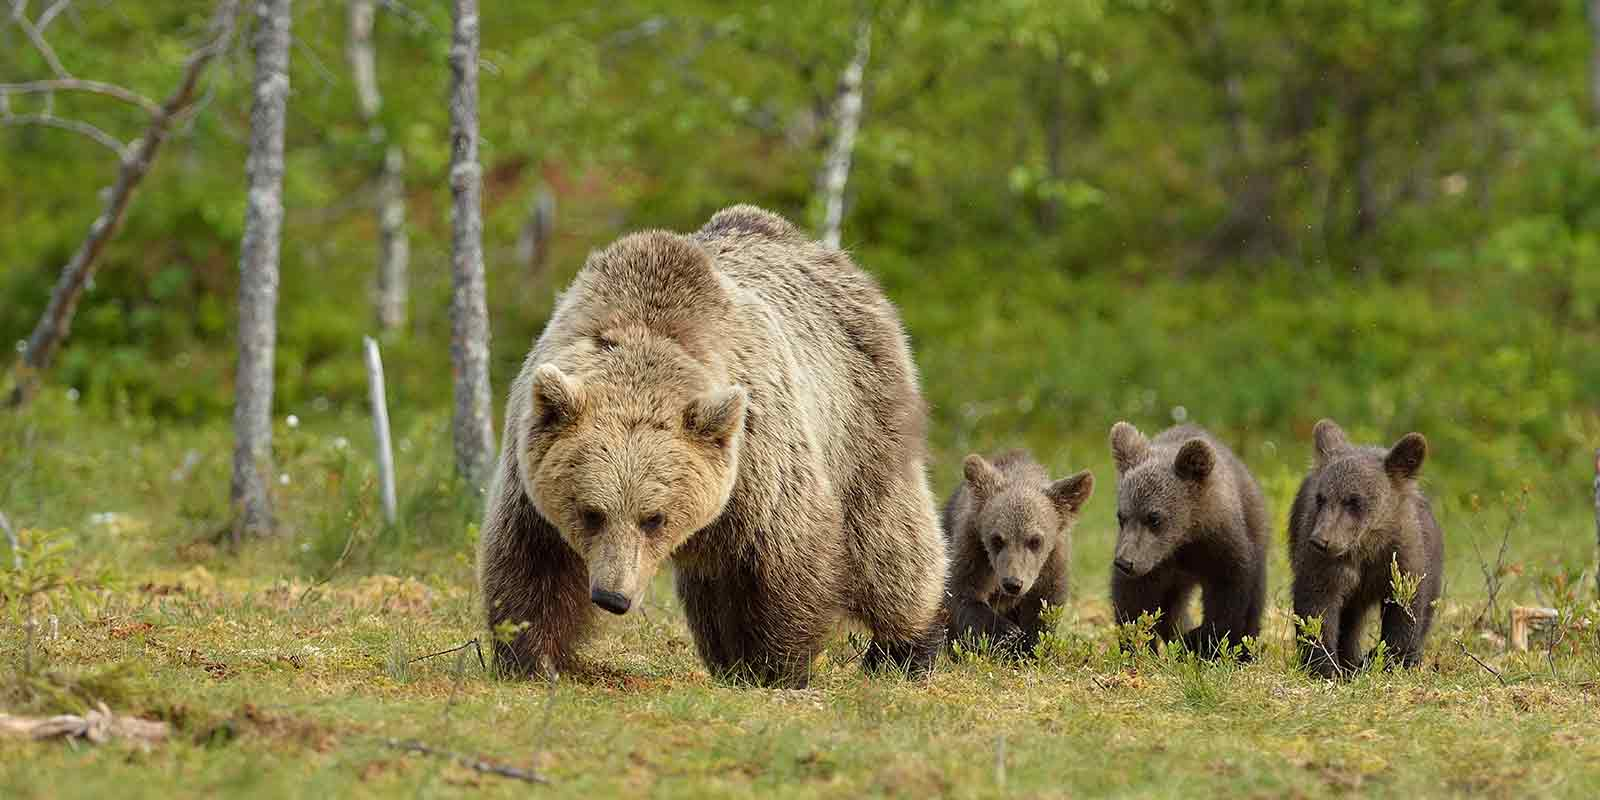 Brown bear family of mother and three cubs walking through the forest in Finland